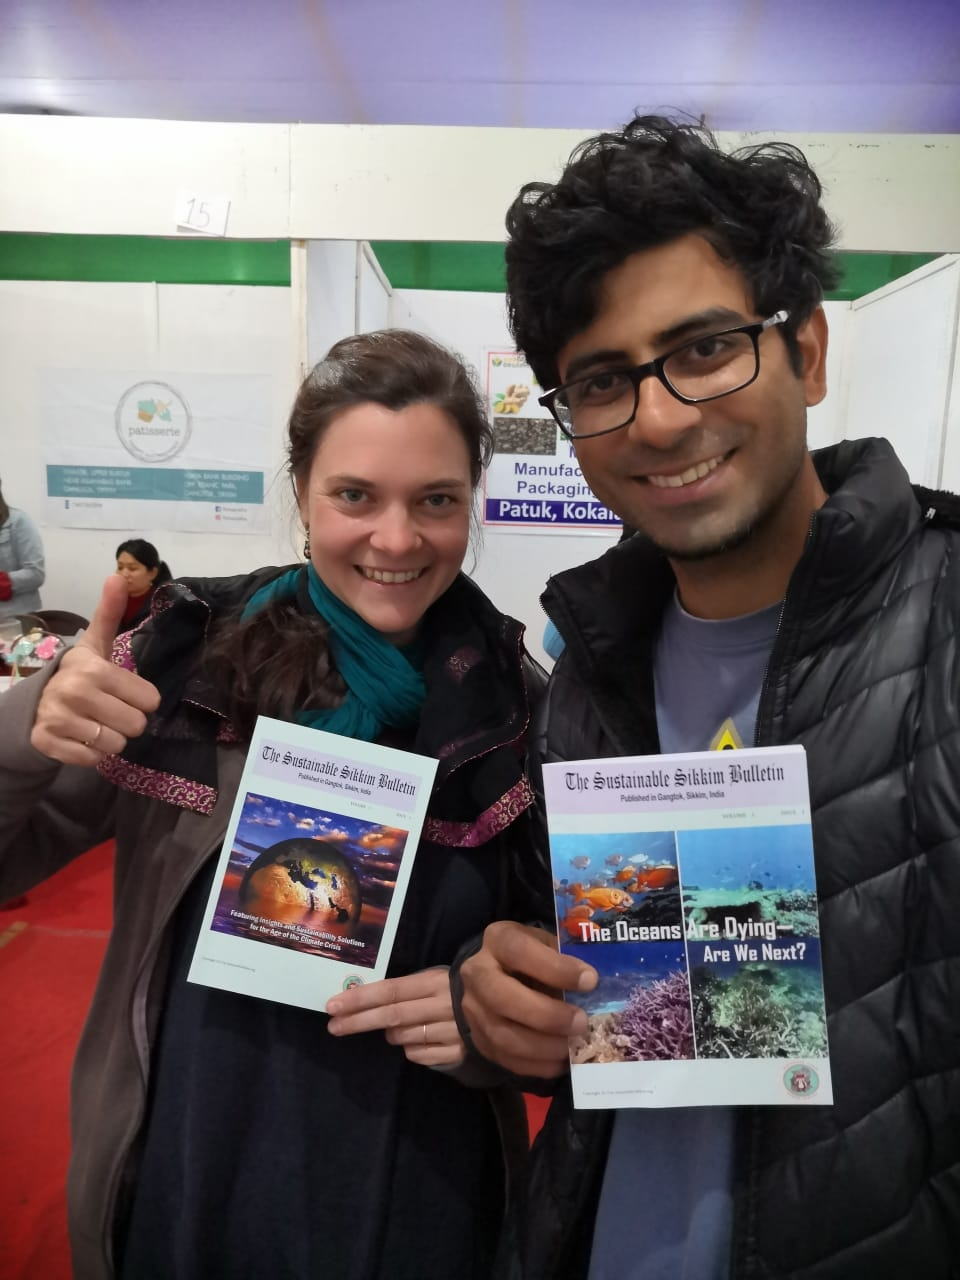 Mr. & Mrs. Giyanani, visitors from Germany, holding Sustainable Sikkim bulletins at the Trade Fair in Gangtok